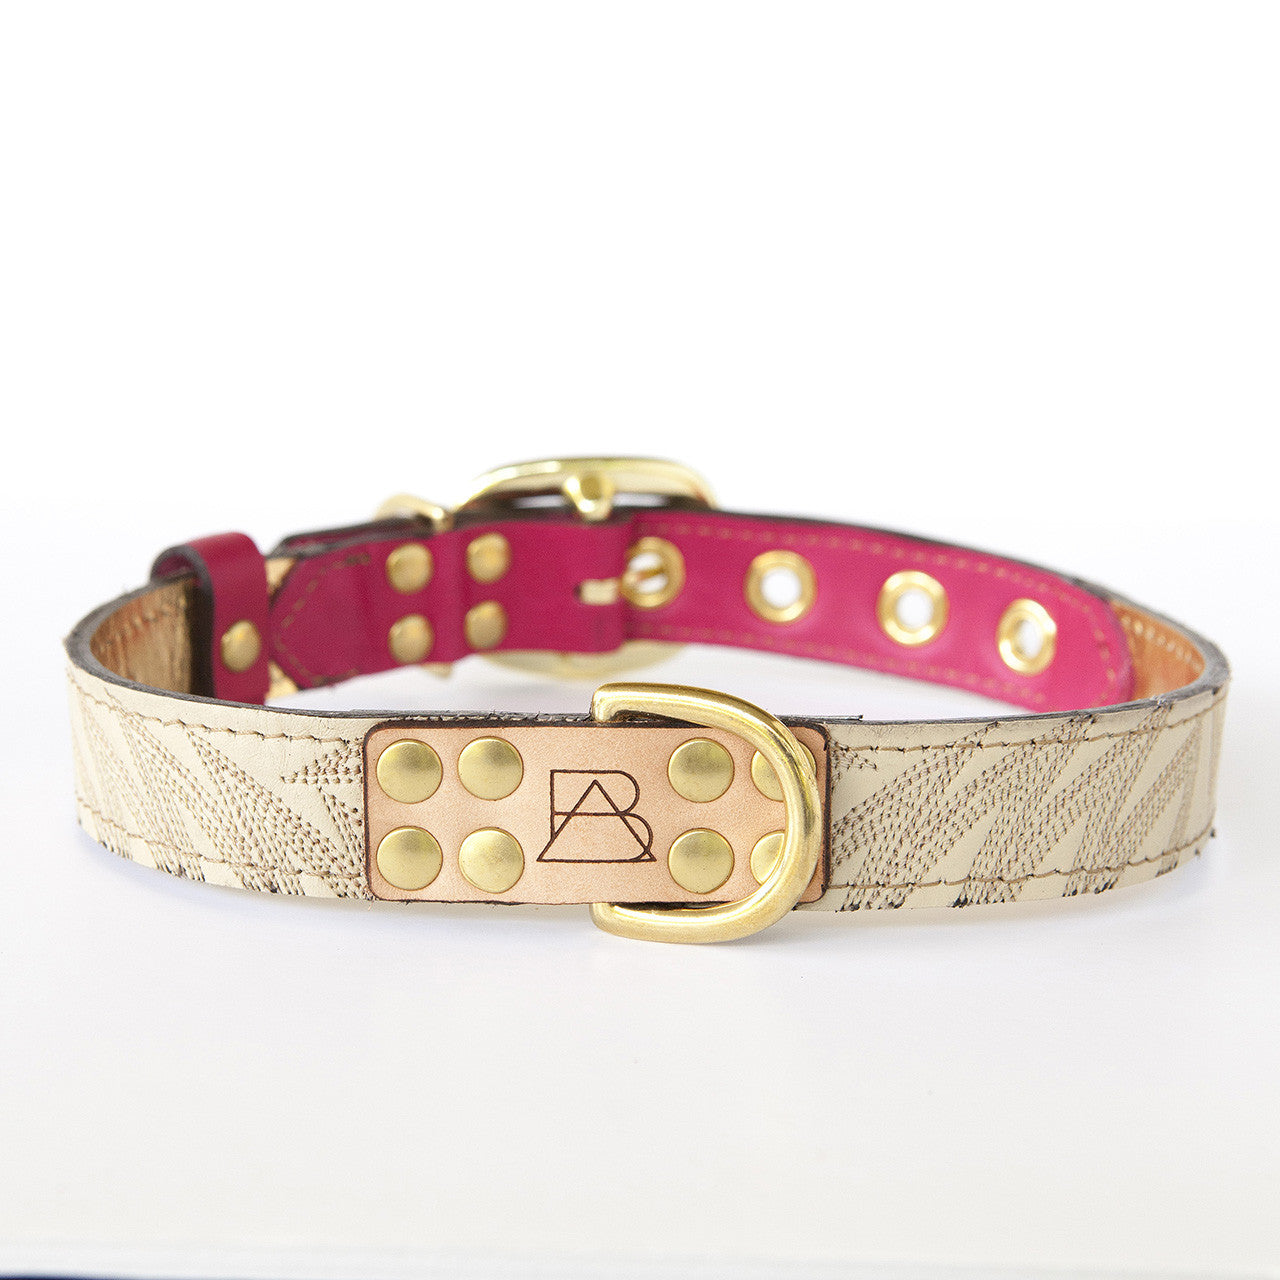 Hot Pink Dog Collar with Ivory Leather + Brown Stitching (front view)